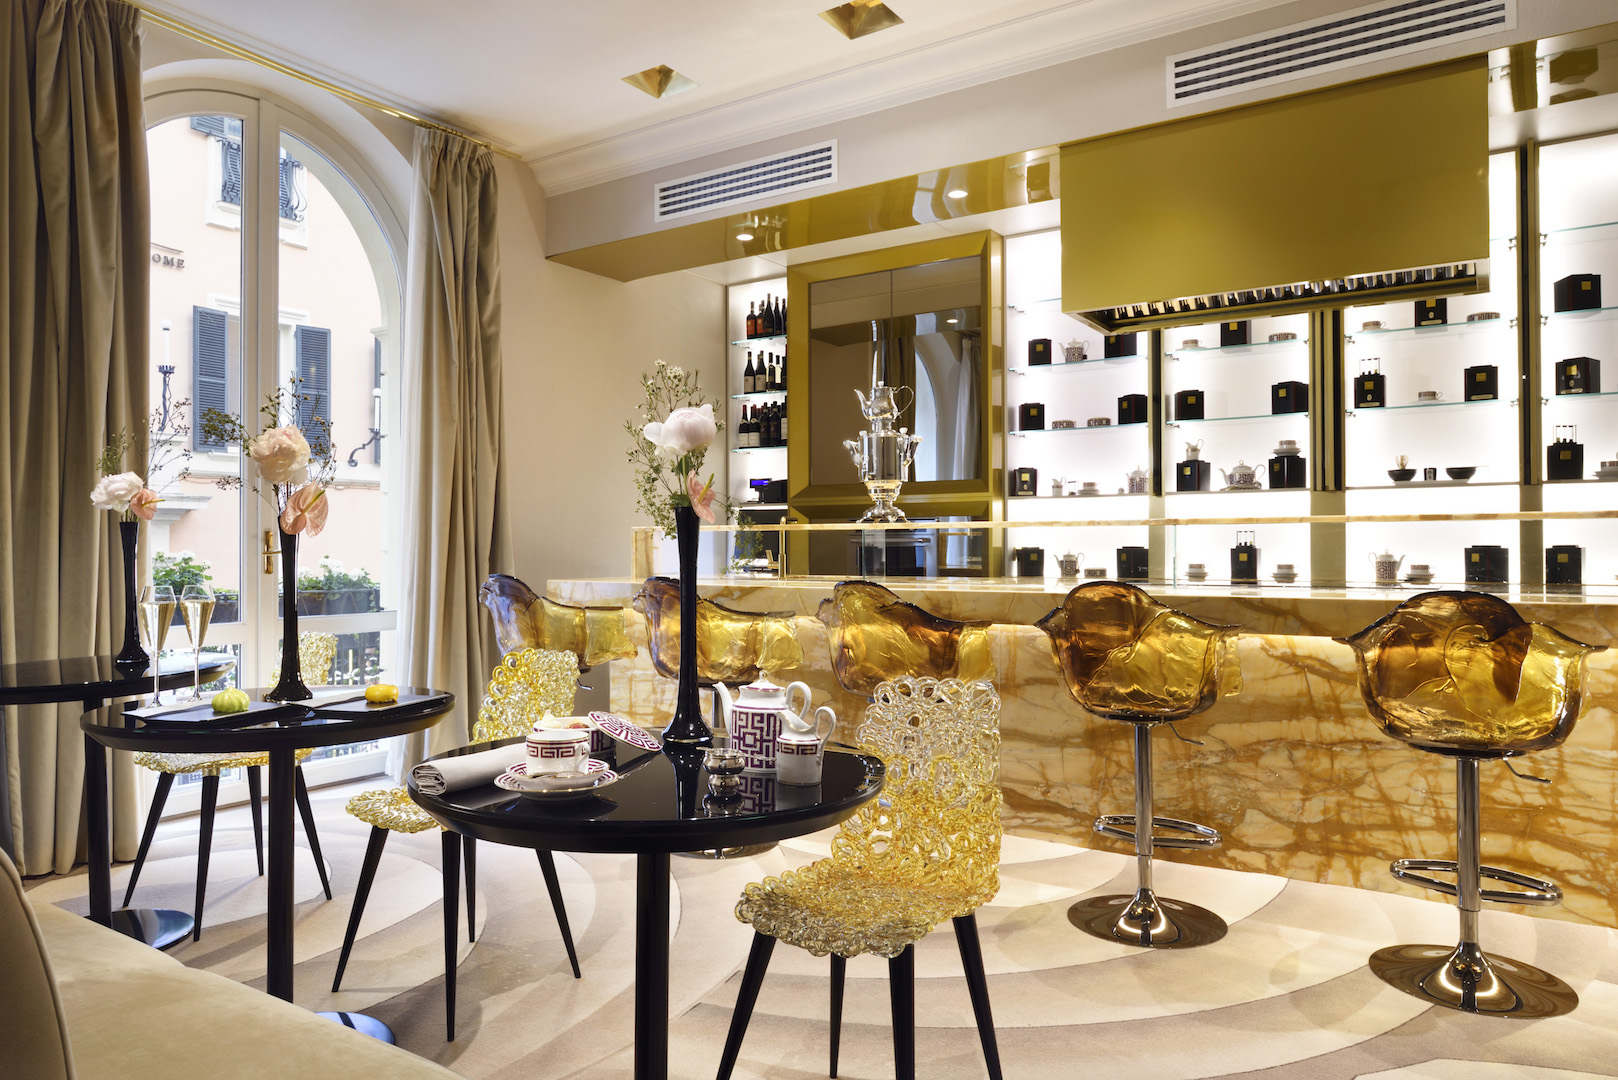 The First Roma Dolce Hotel tea room